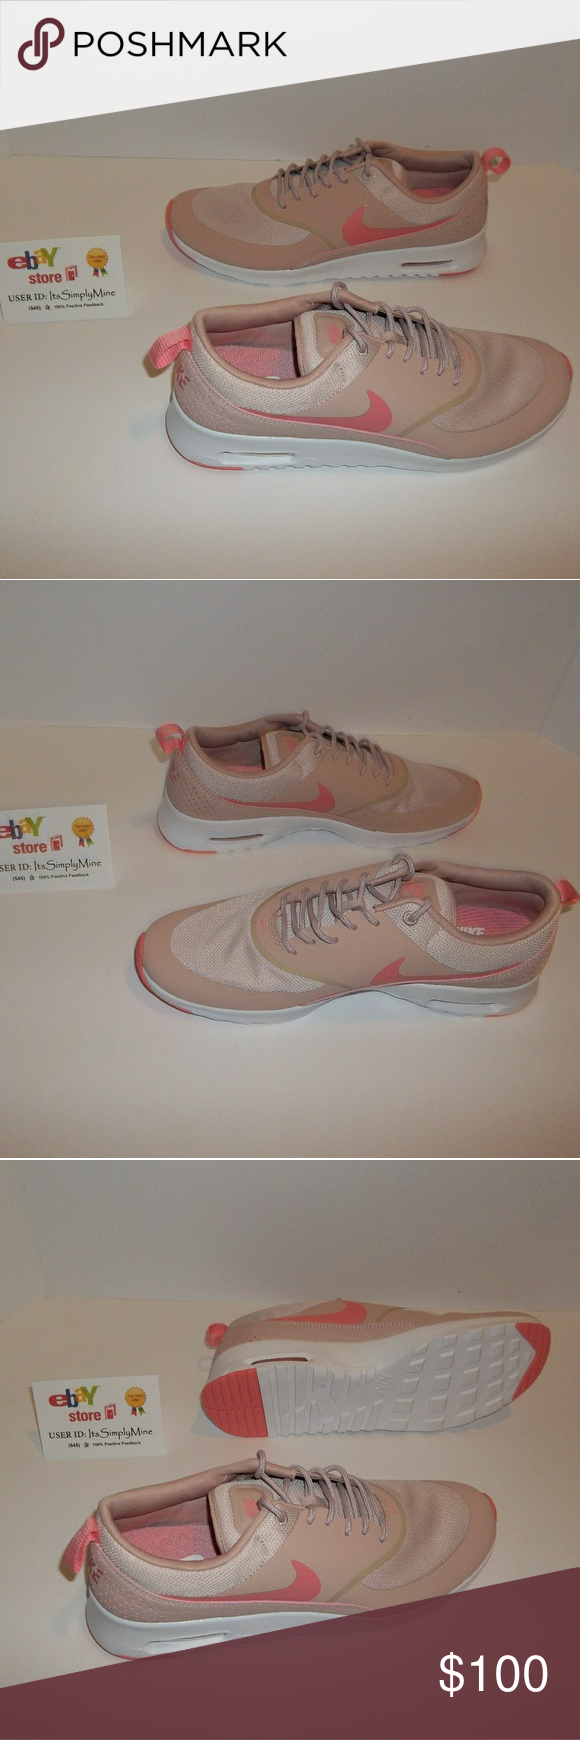 New Women s Nike Air Max Thea – Size 12 New Women s Nike Air Max Thea – 4976d80f565d